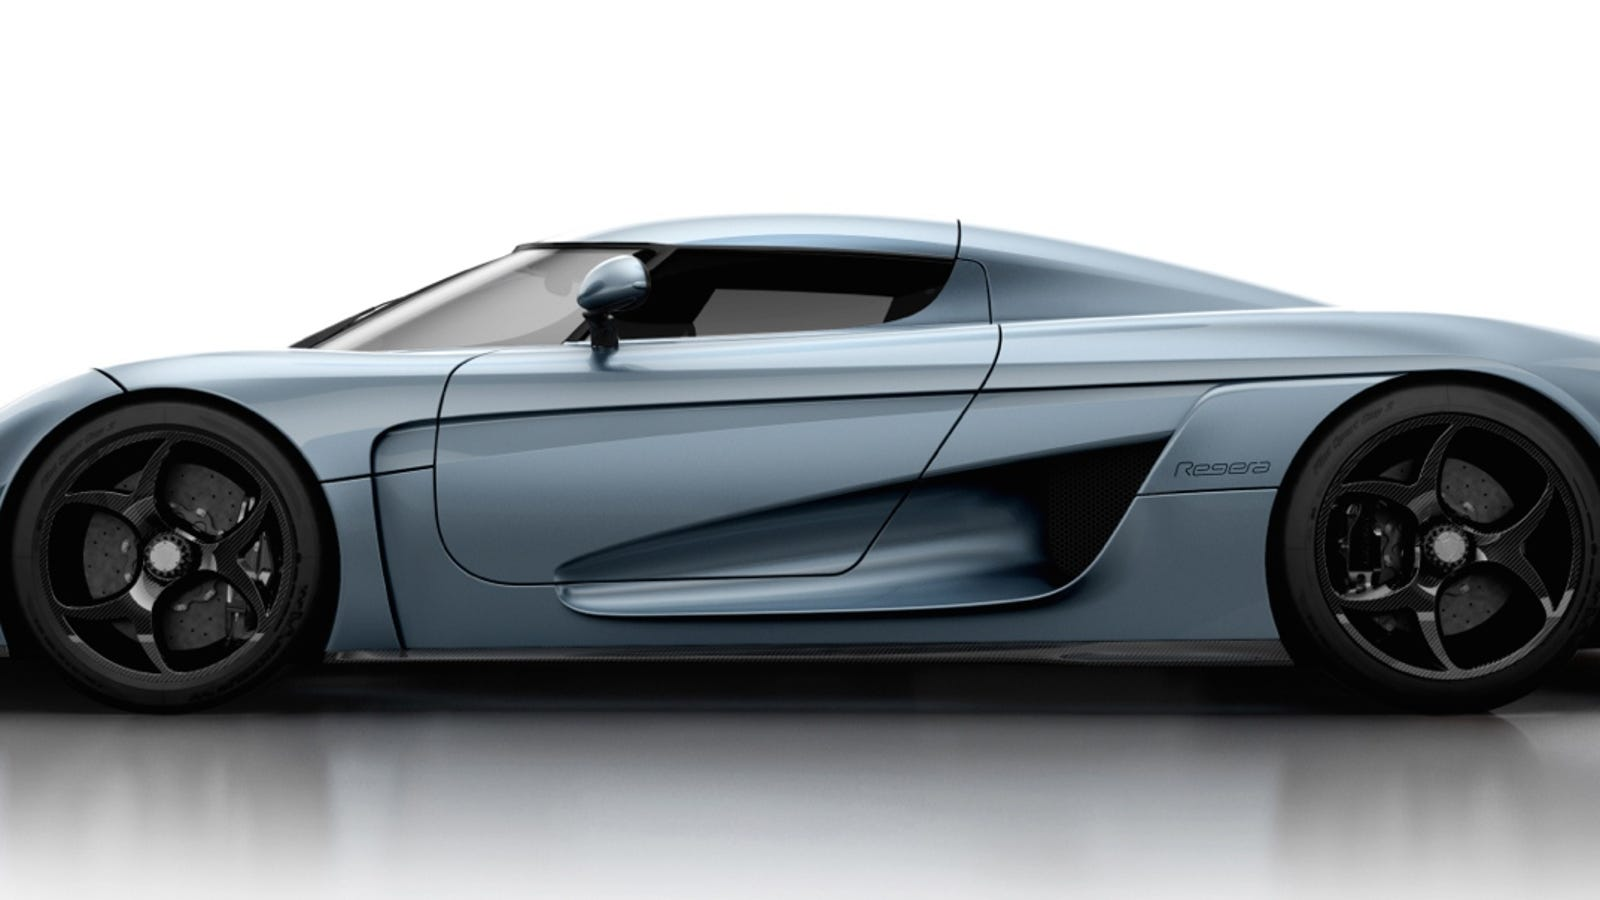 How The 1,500 HP Koenigsegg Regera Hits 248 MPH Without A